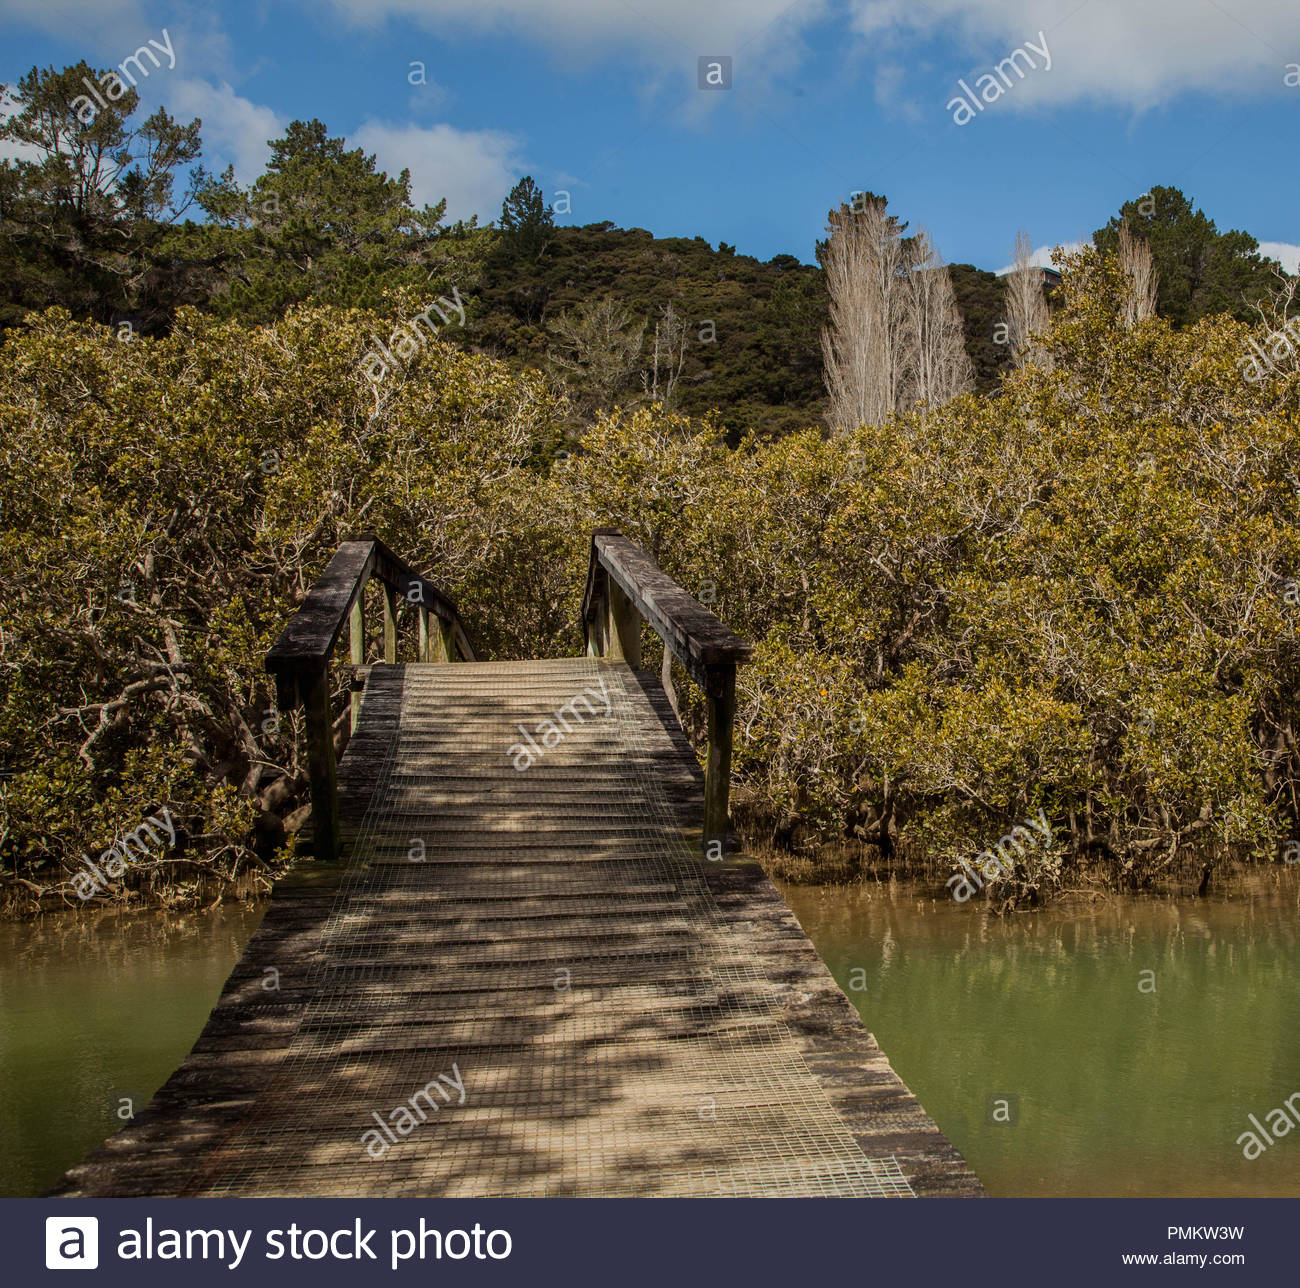 Mangroves at Te Haumi New Zealand 18 October 2018 - Stock Image